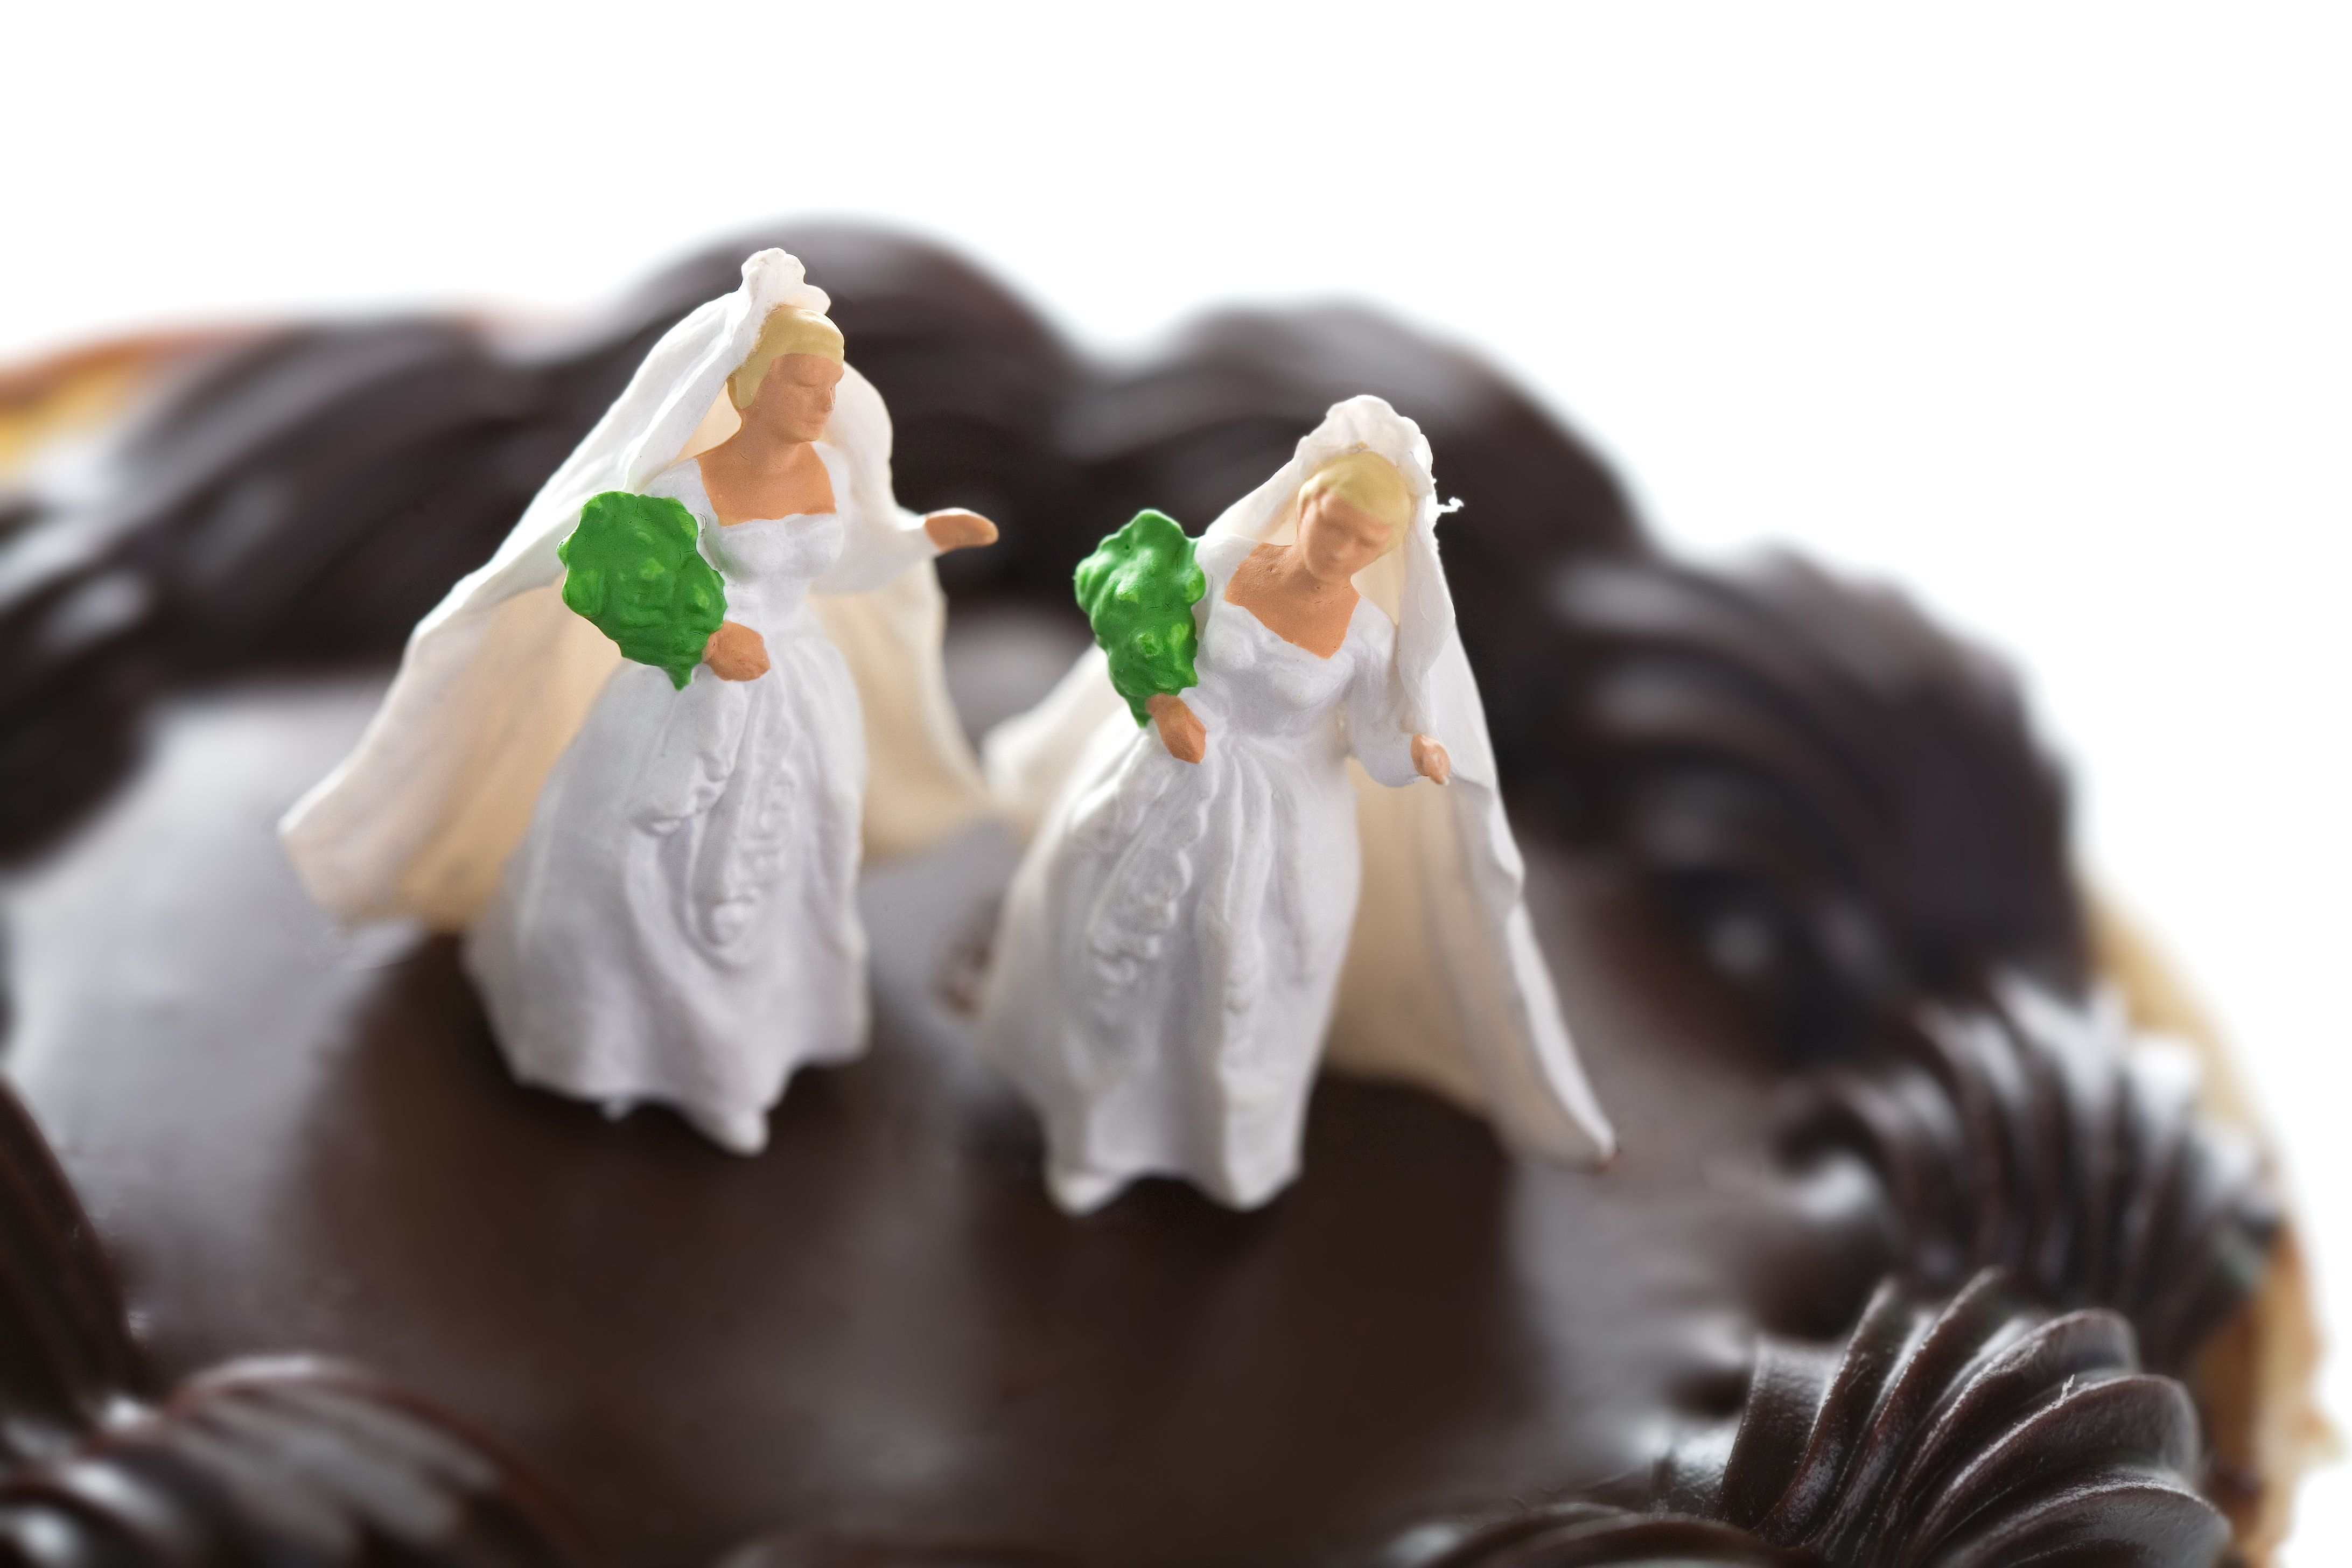 Tiny wedding figures atop a small heart-shaped pastry. These figures are extremely small, about half an inch tall. Conceptual; extremely shallow depth of field.